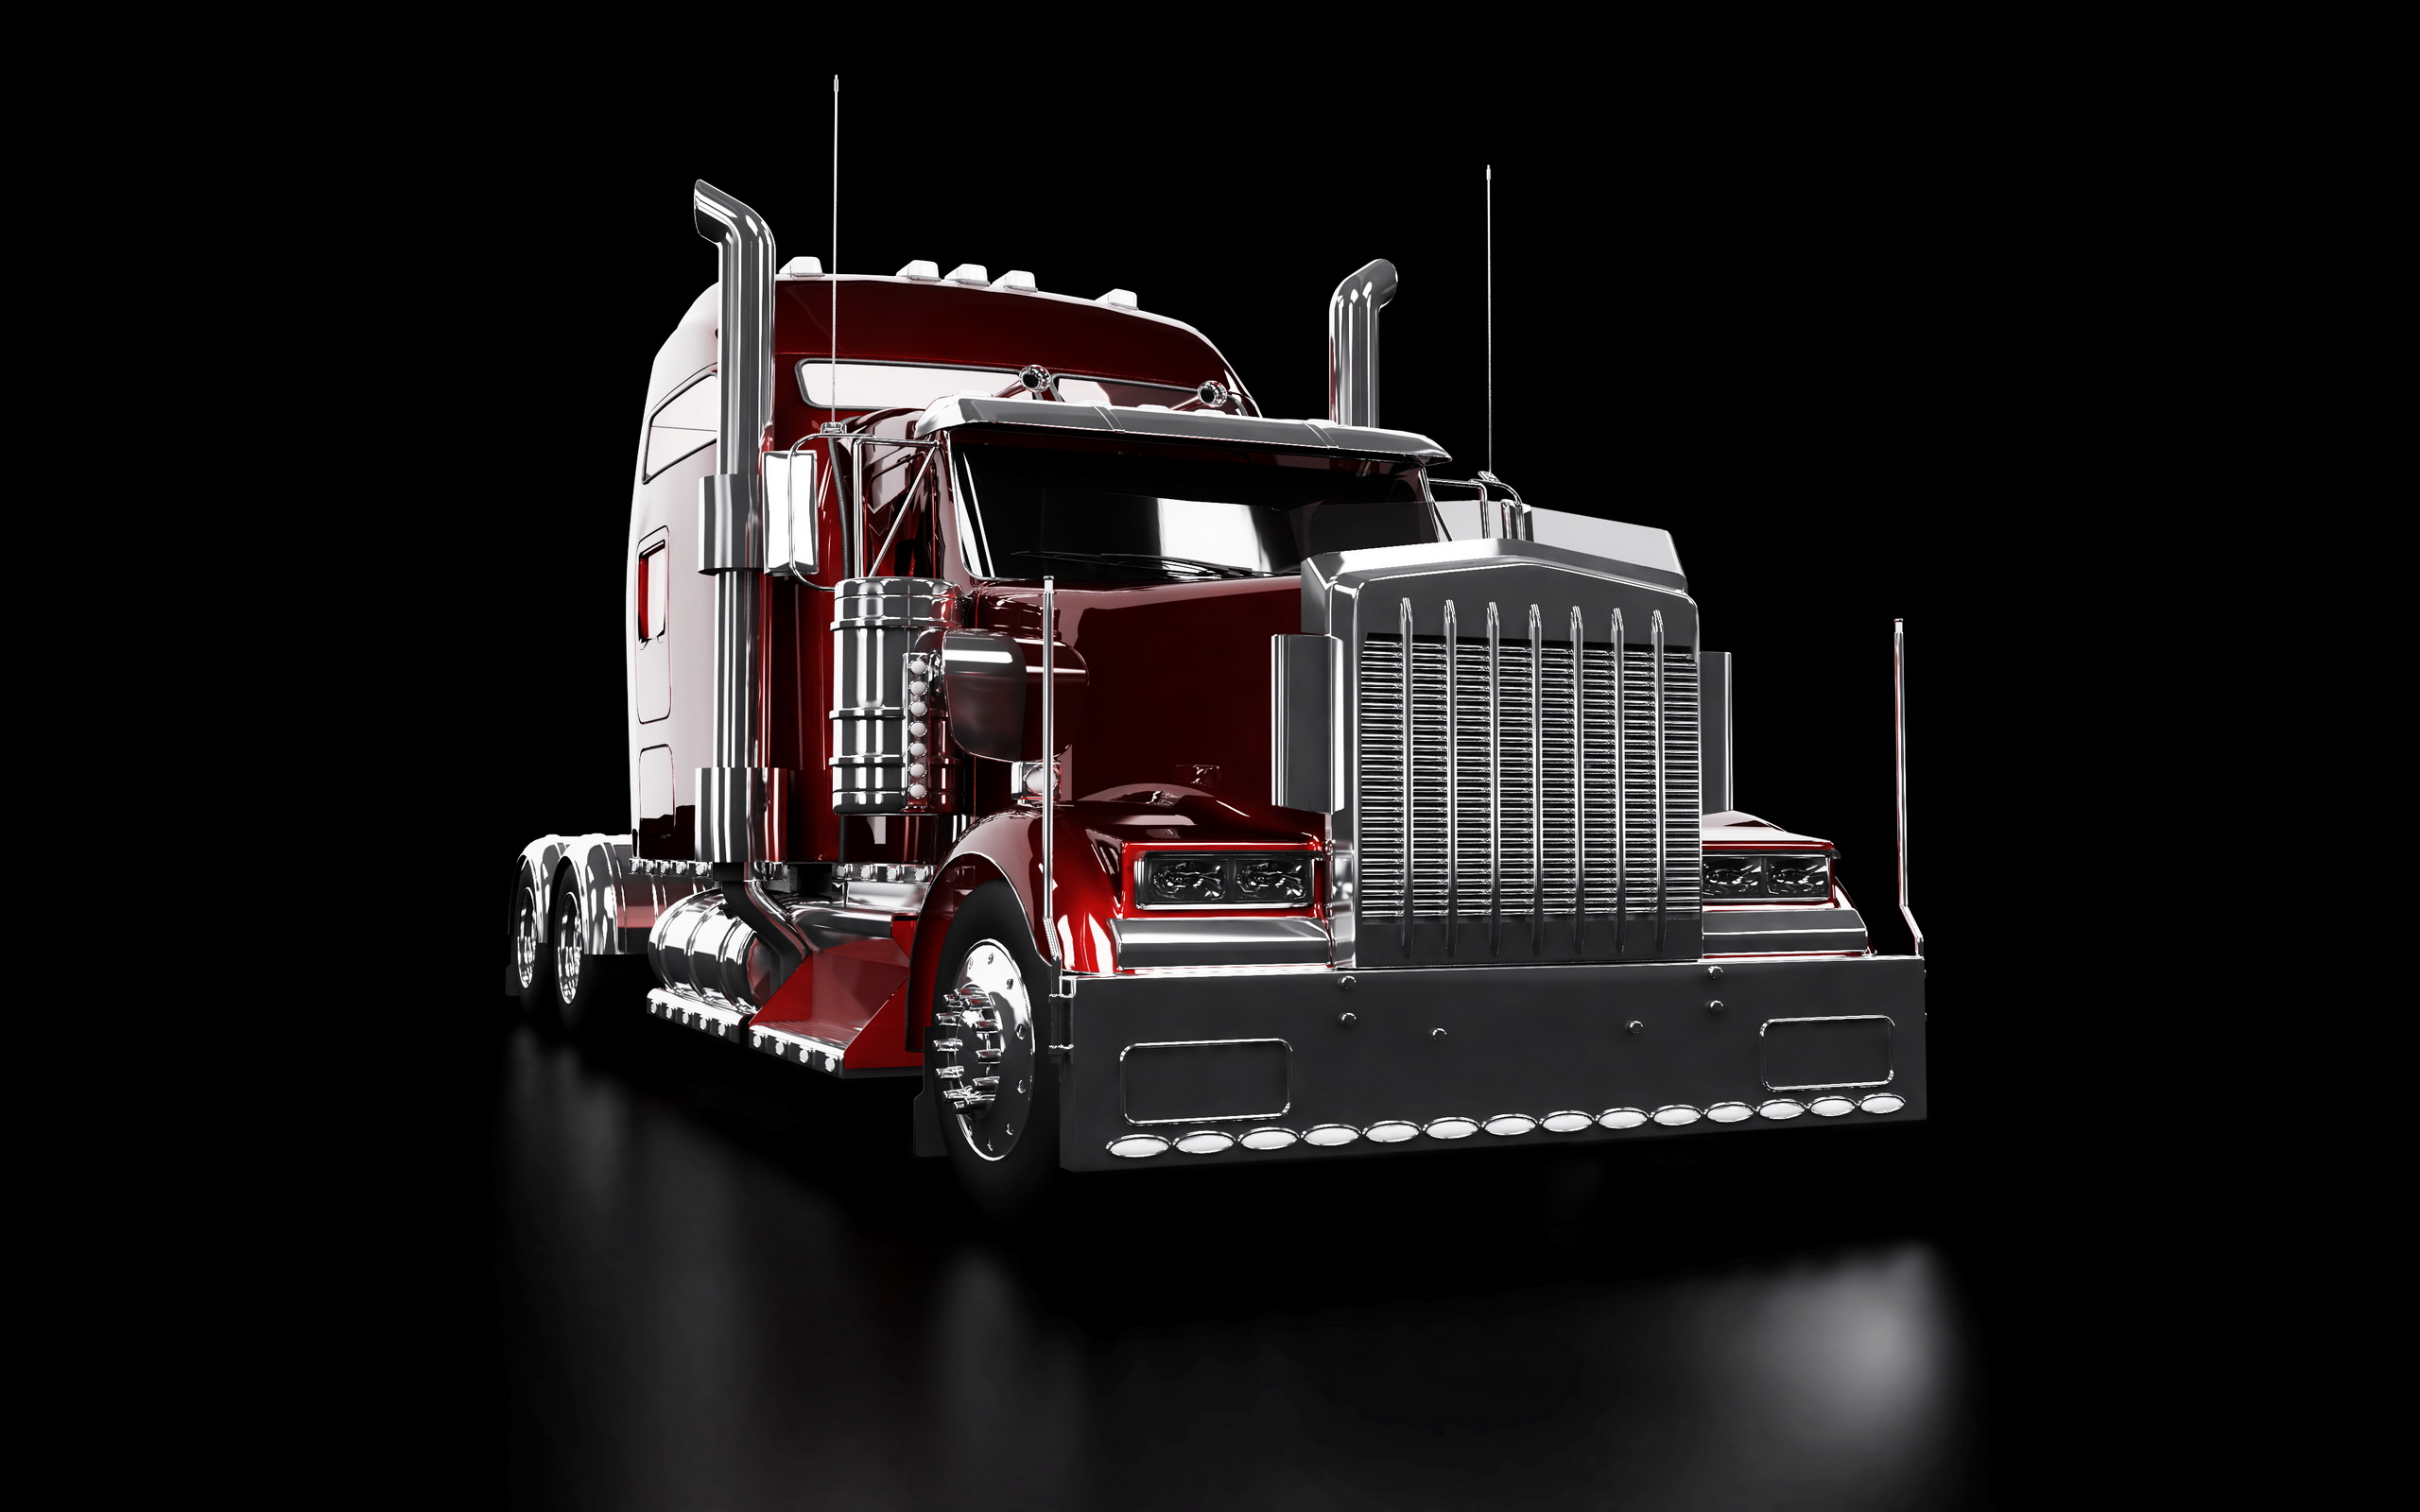 Free 3d Widescreen Wallpapers For Pc Truck Hd Wallpaper Background Image 2560x1600 Id